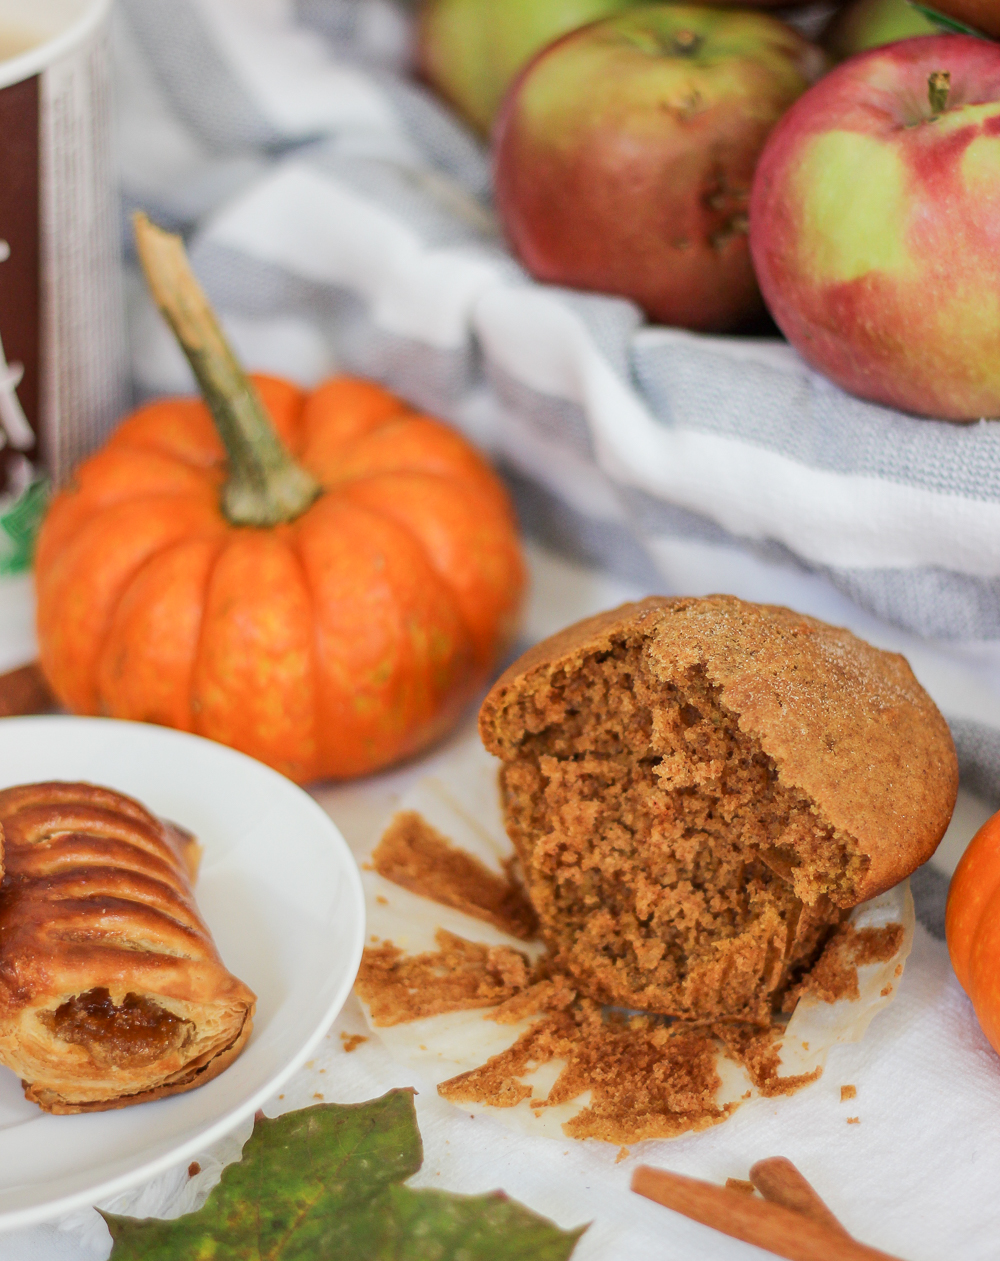 Mc Donald's McCafé Pumpkin spice muffin and mini maple pastries - delicious fall treats